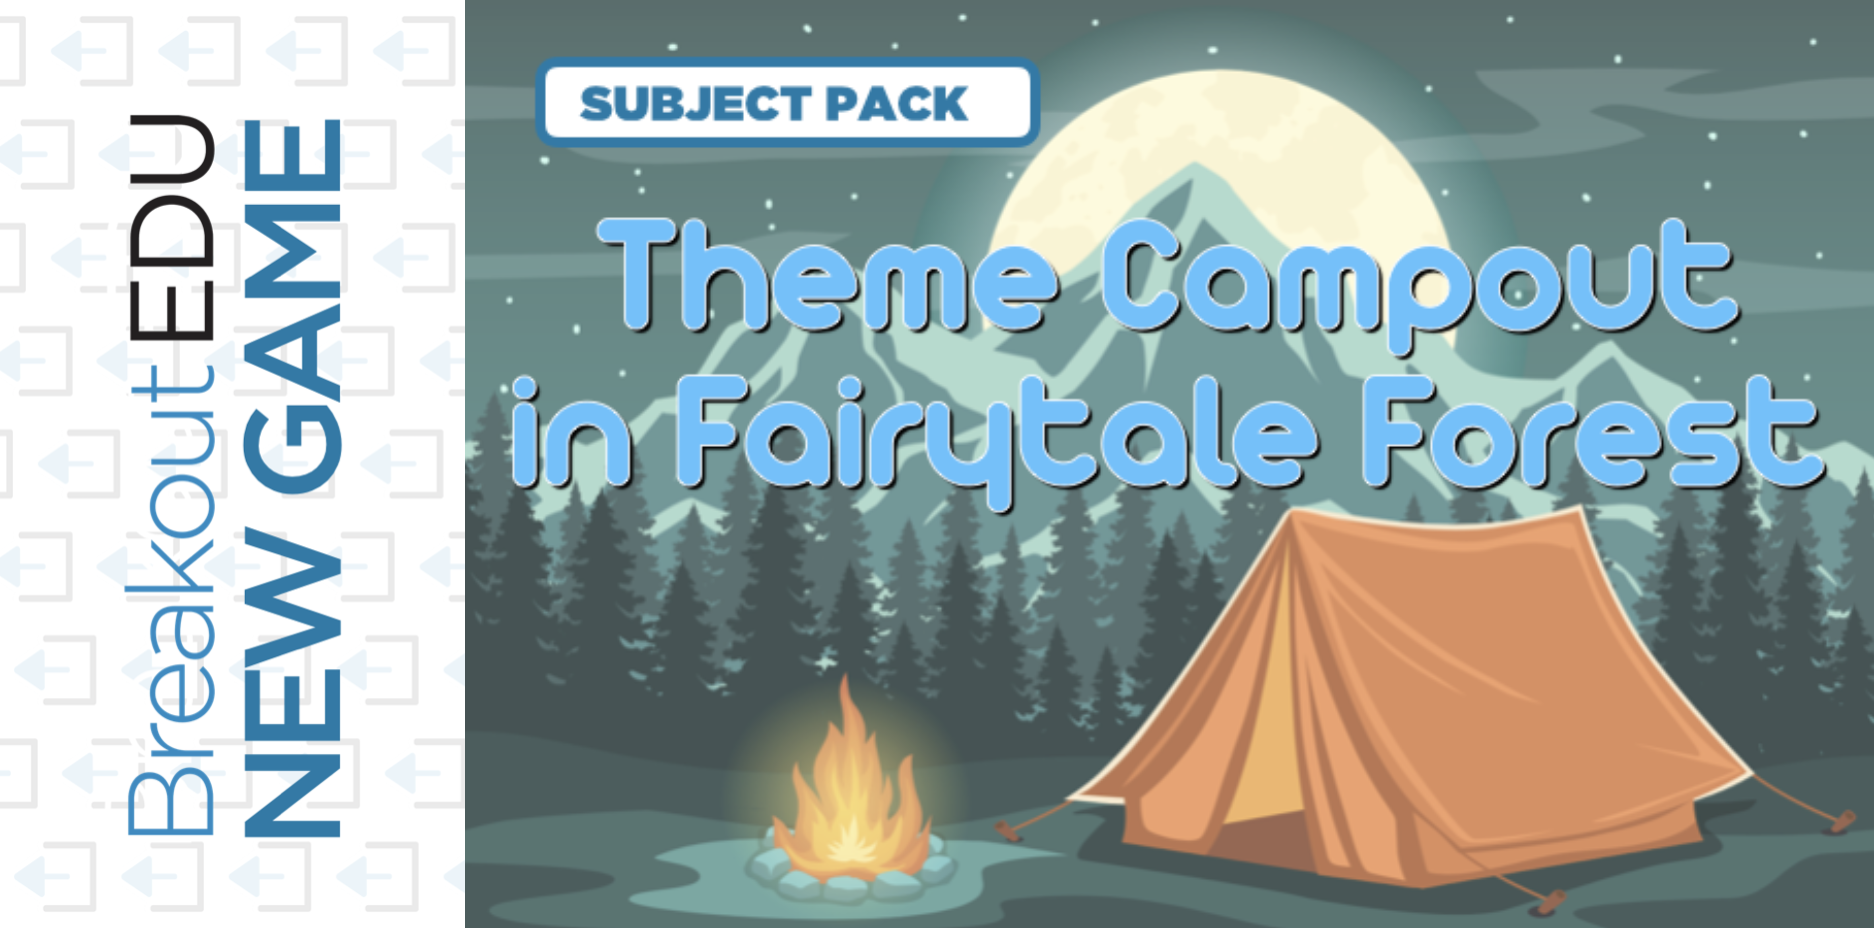 theme-campout-fairytale-forest.png